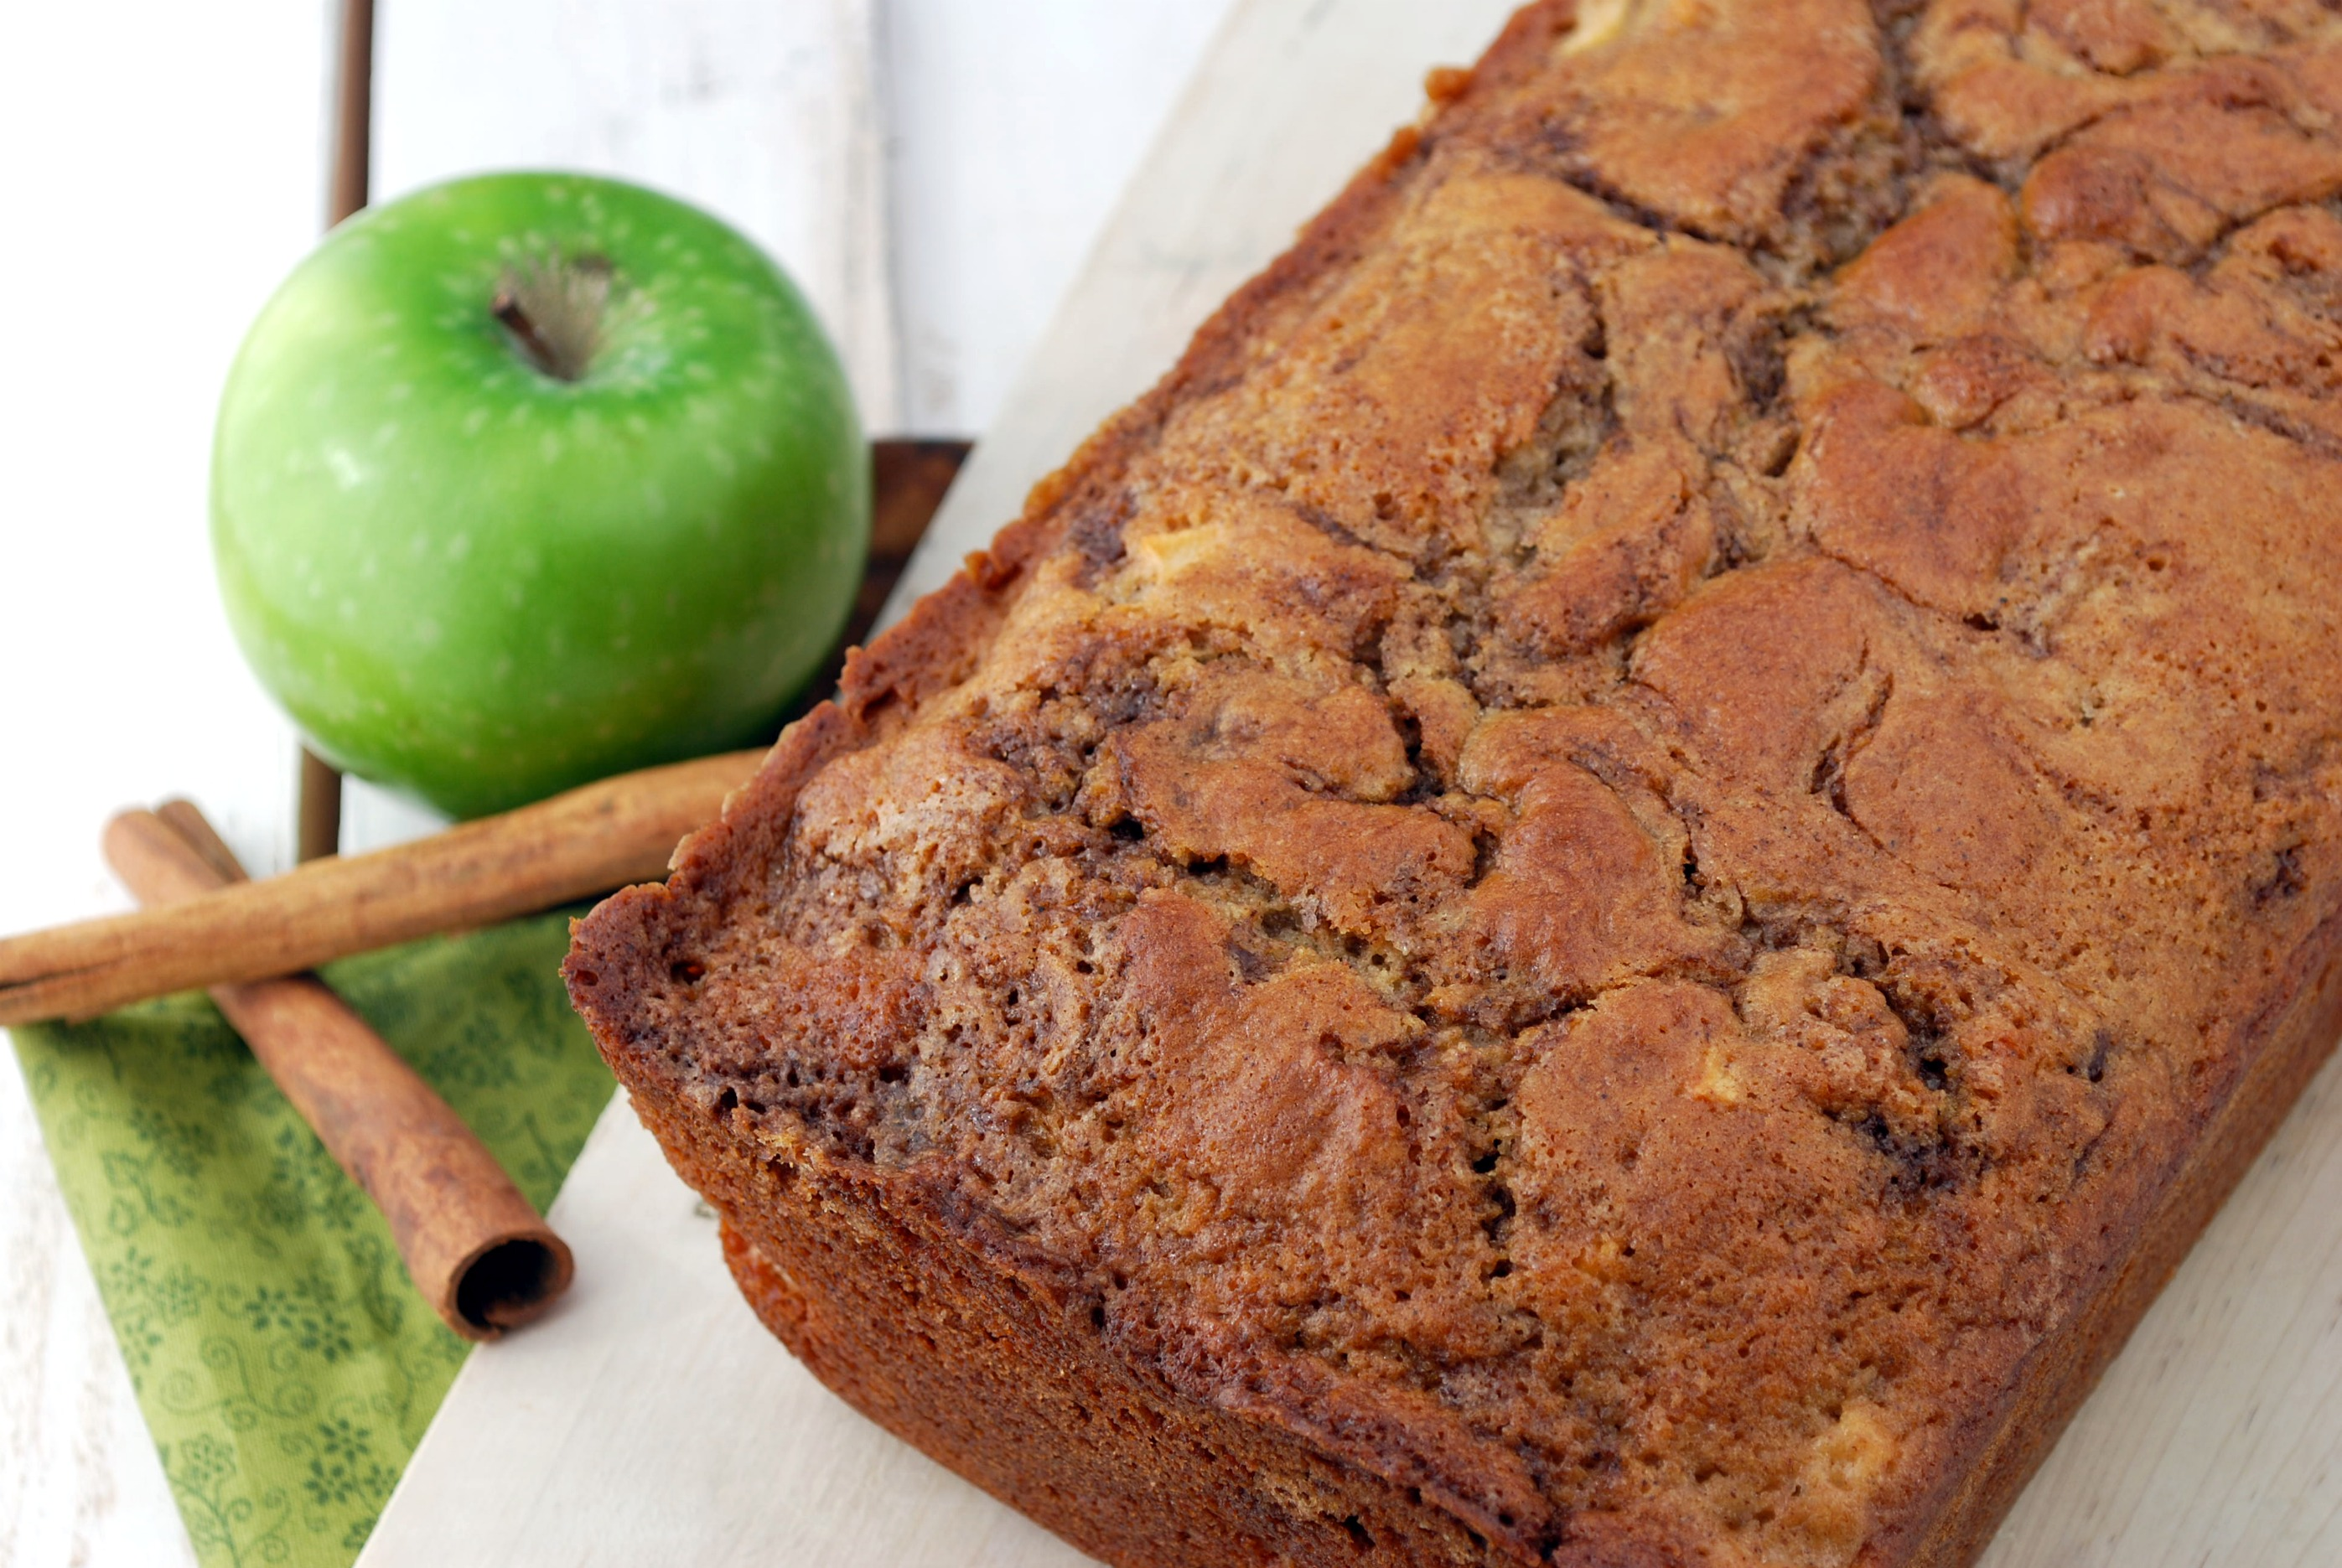 Apple Cinnamon Bread Recipe Cake And Allie